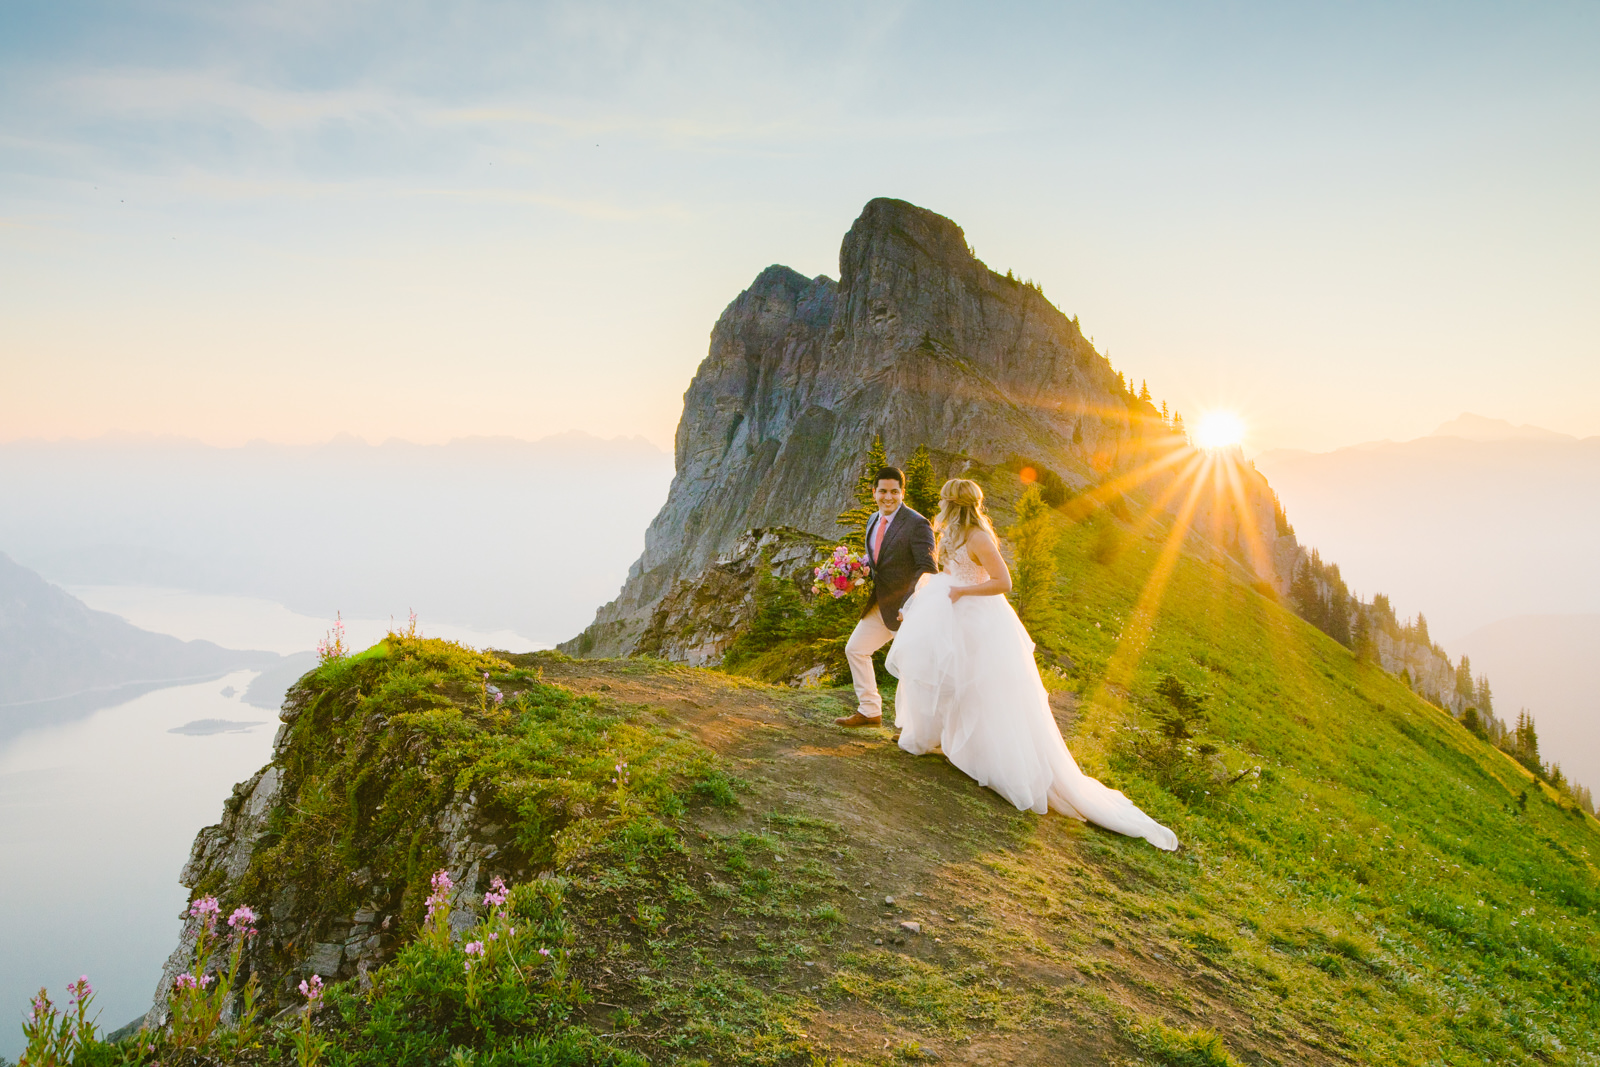 Sunrise Elopement at the top of a mountain in Canada